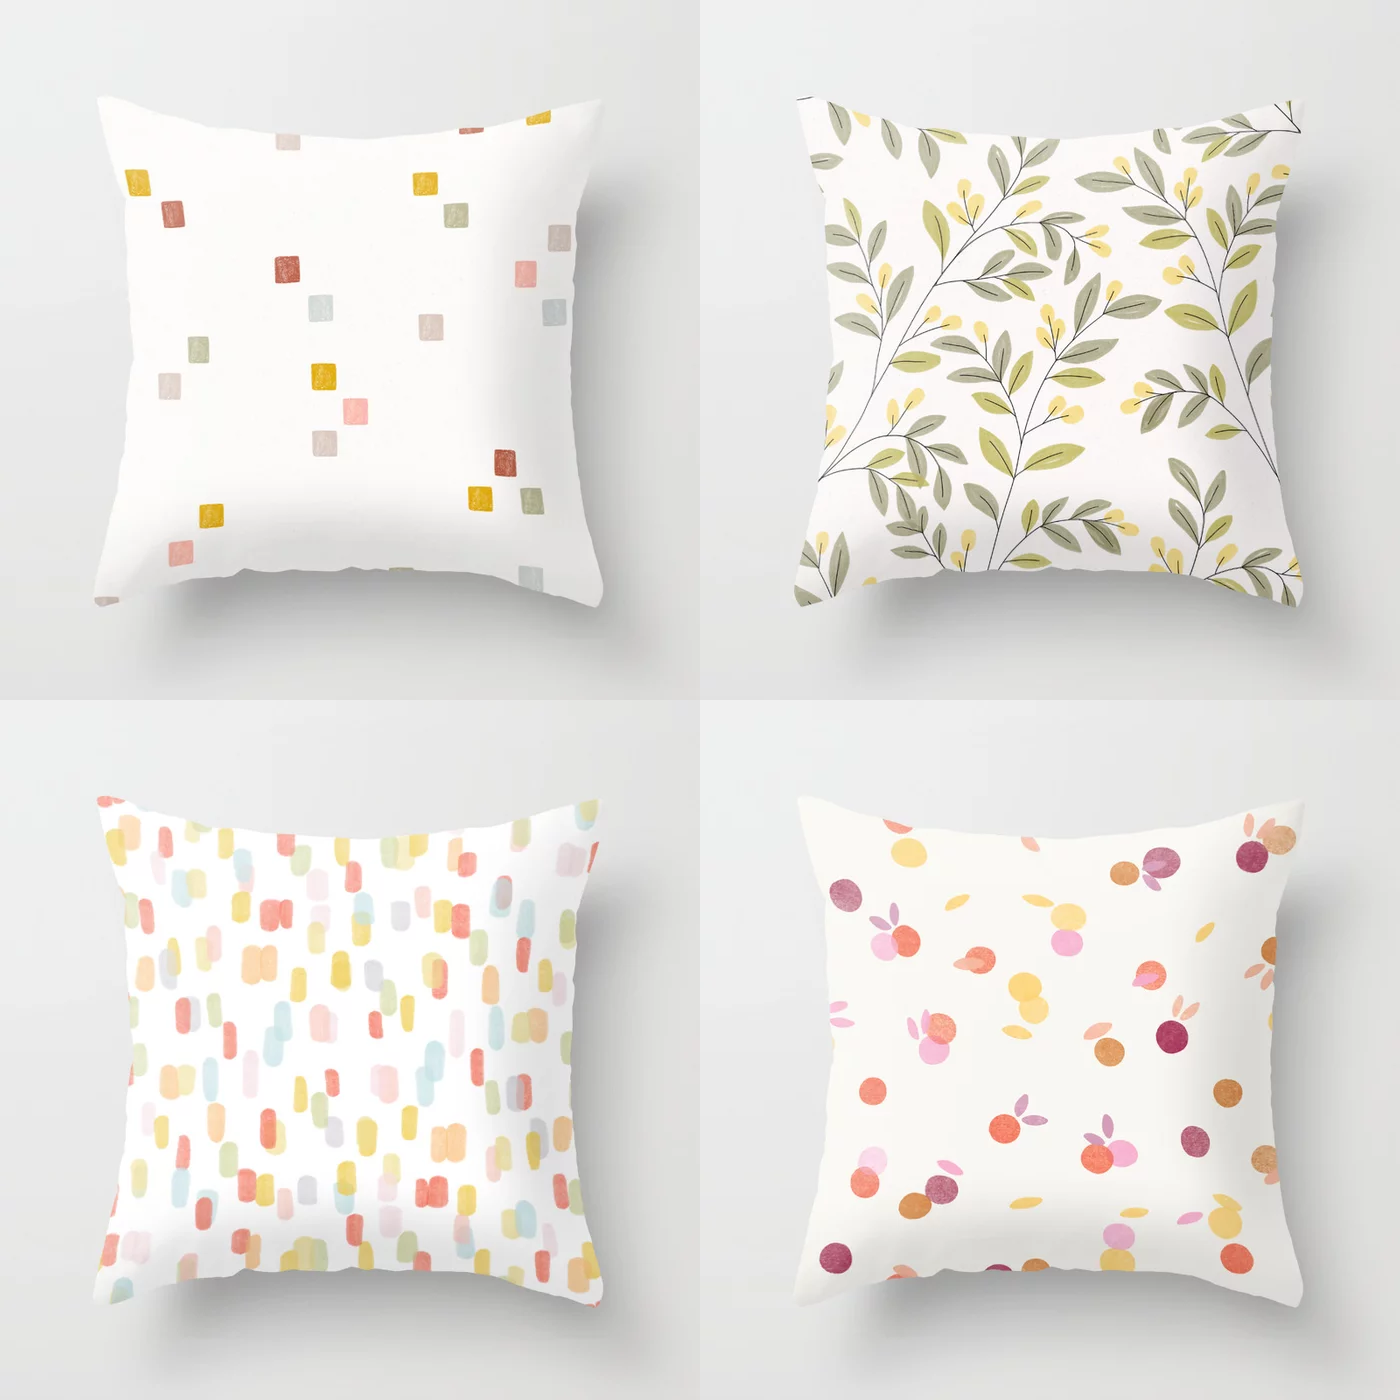 Minna So Pattern Design Pillow Case Samples